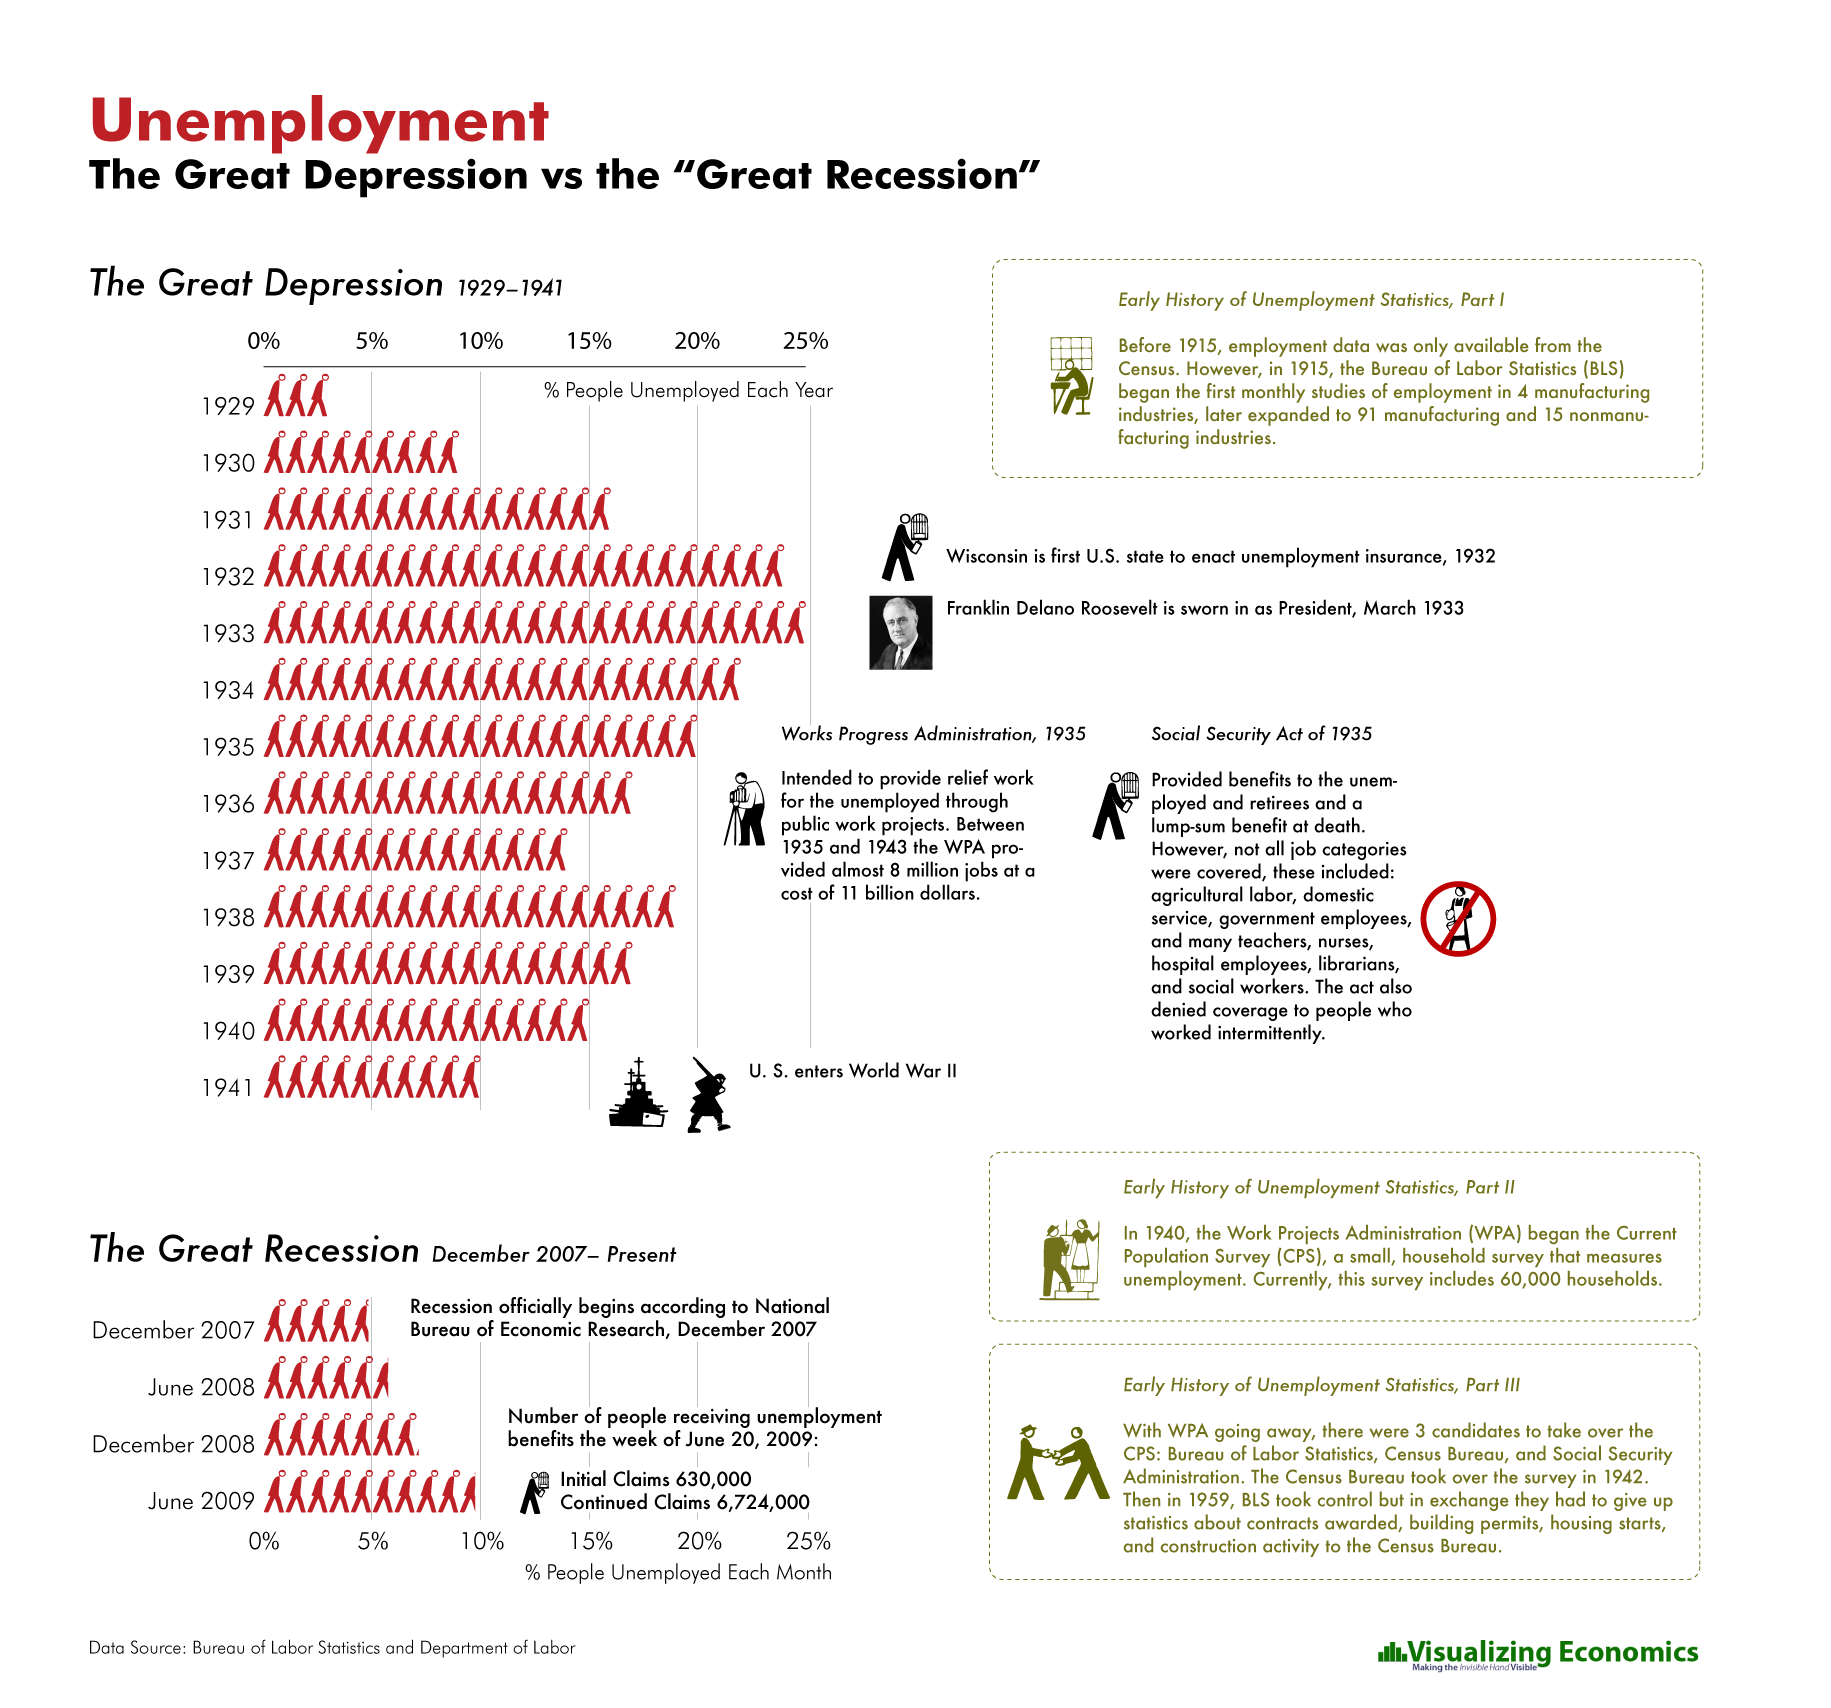 Unemployment and the Great Recession